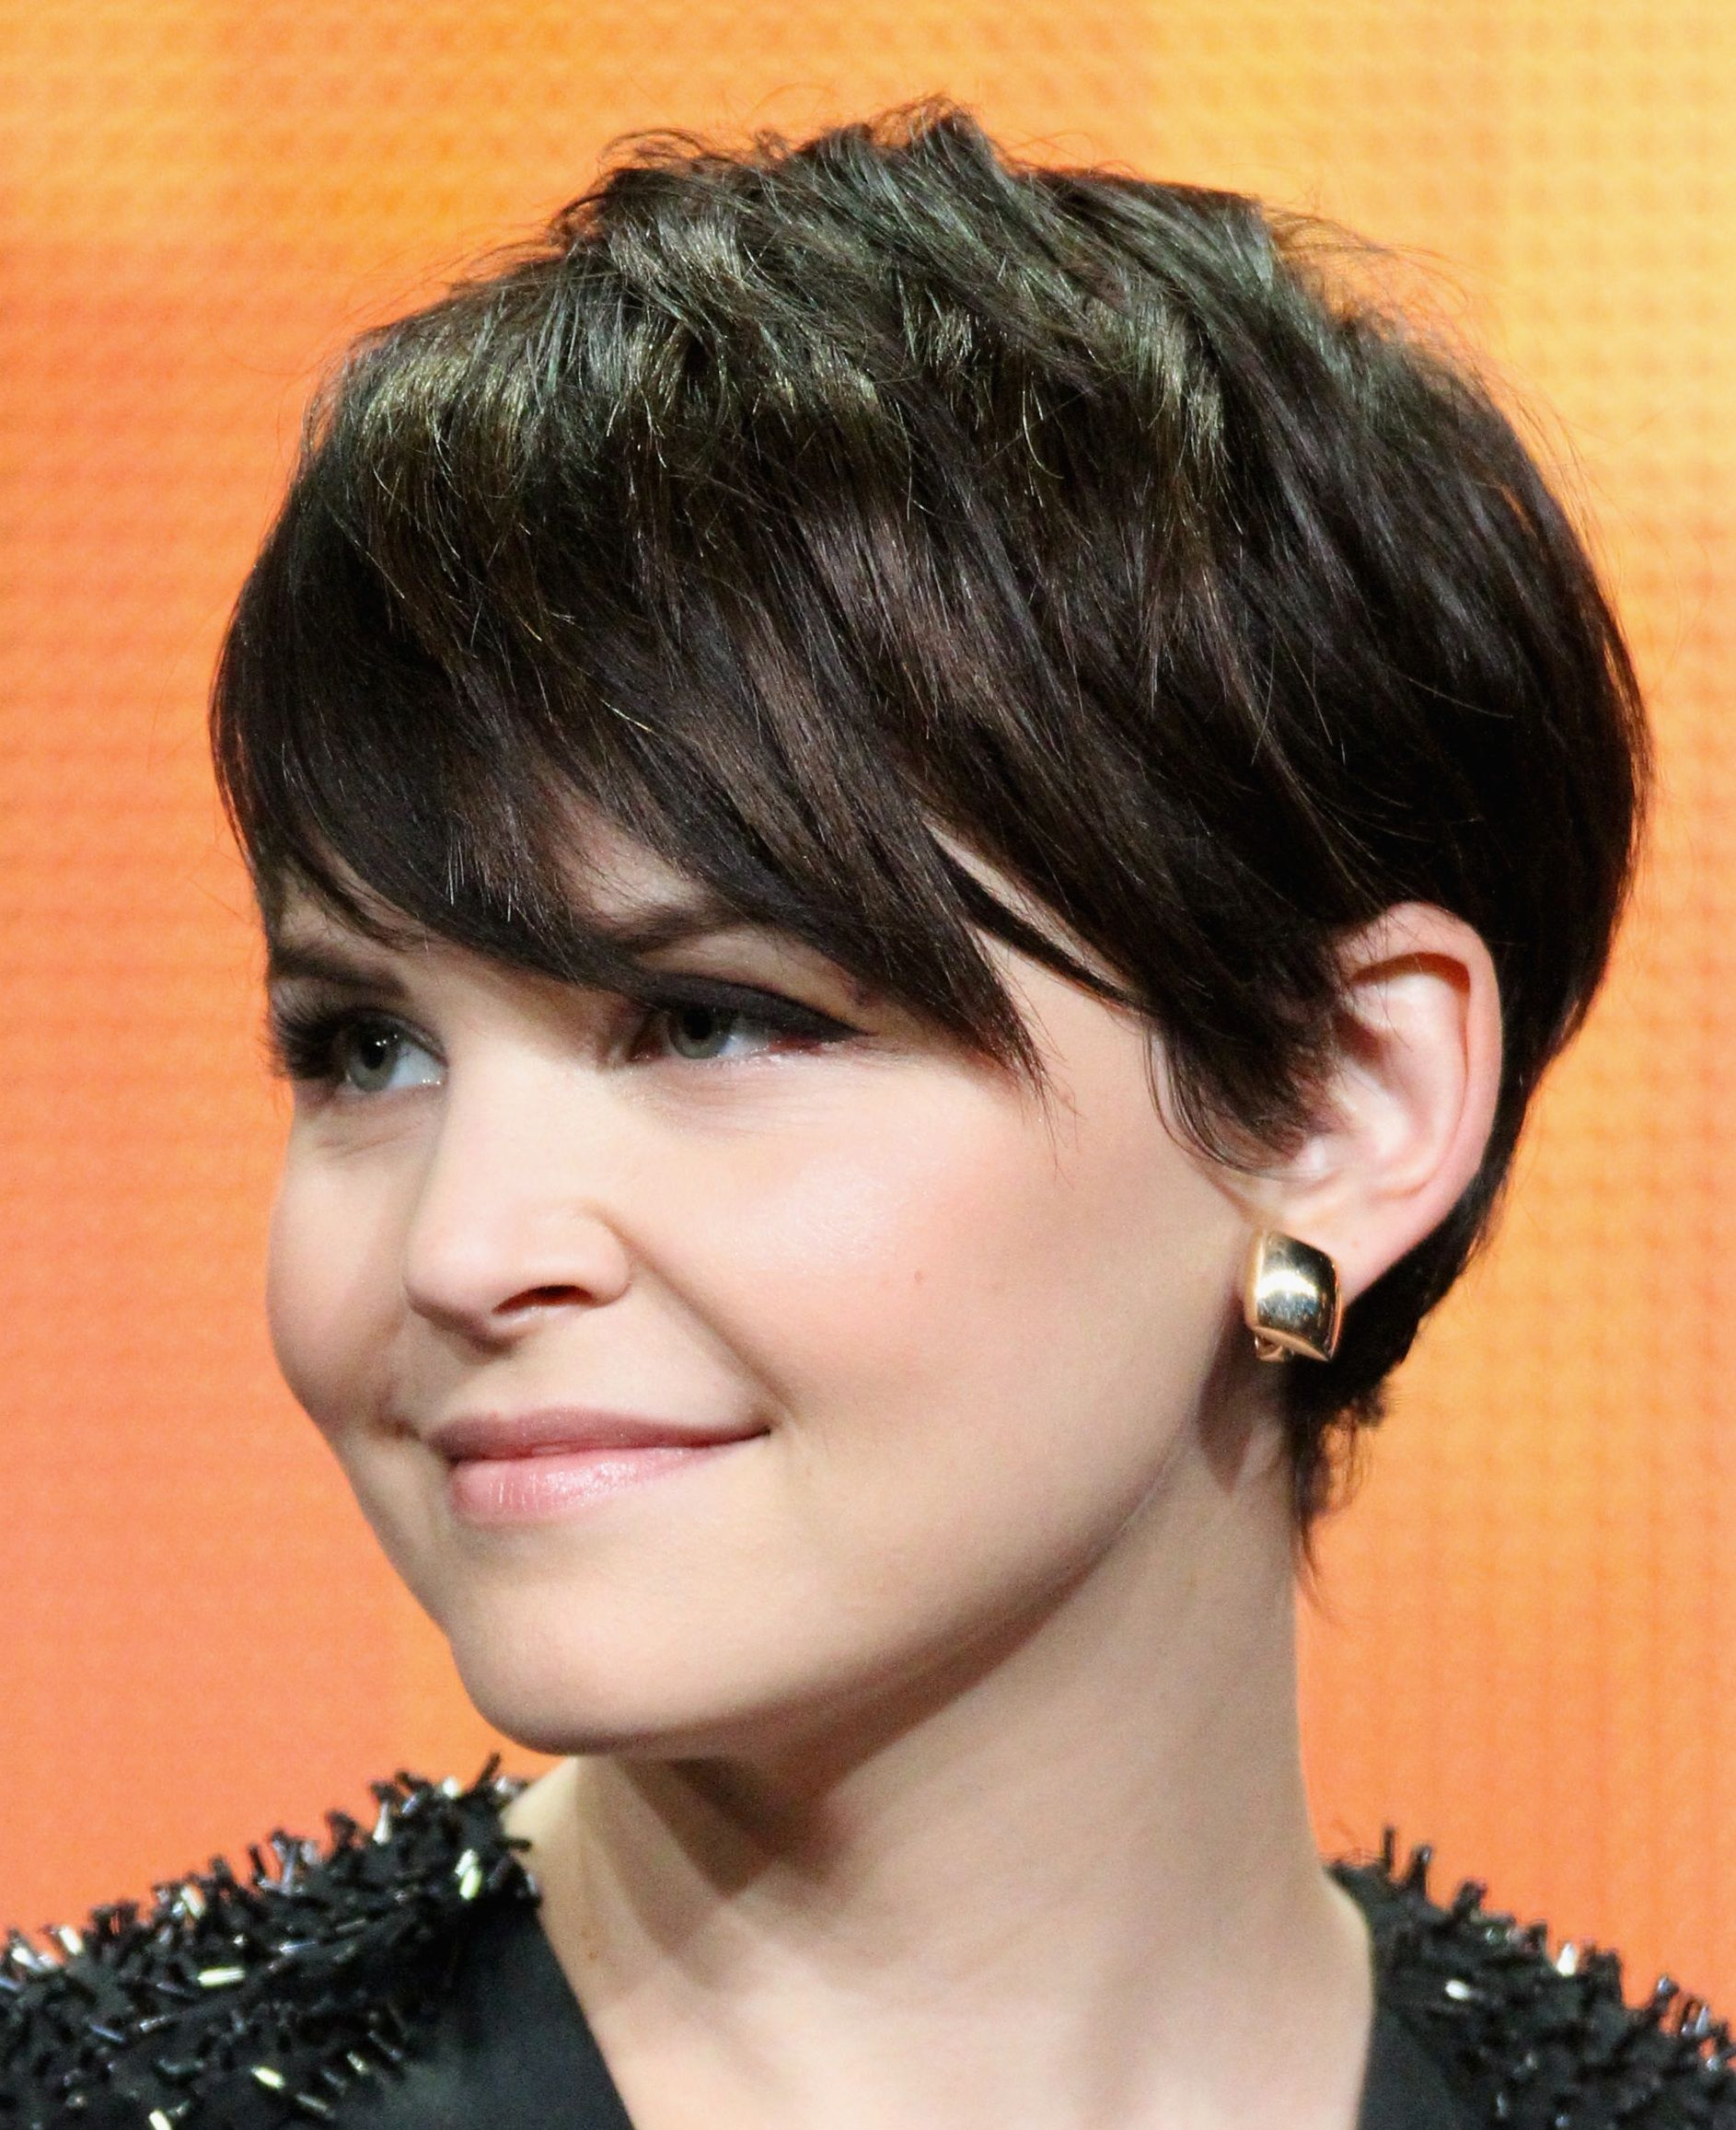 A Gallery of Short Brown Hair: From Pixies to Shags | Short dark ...